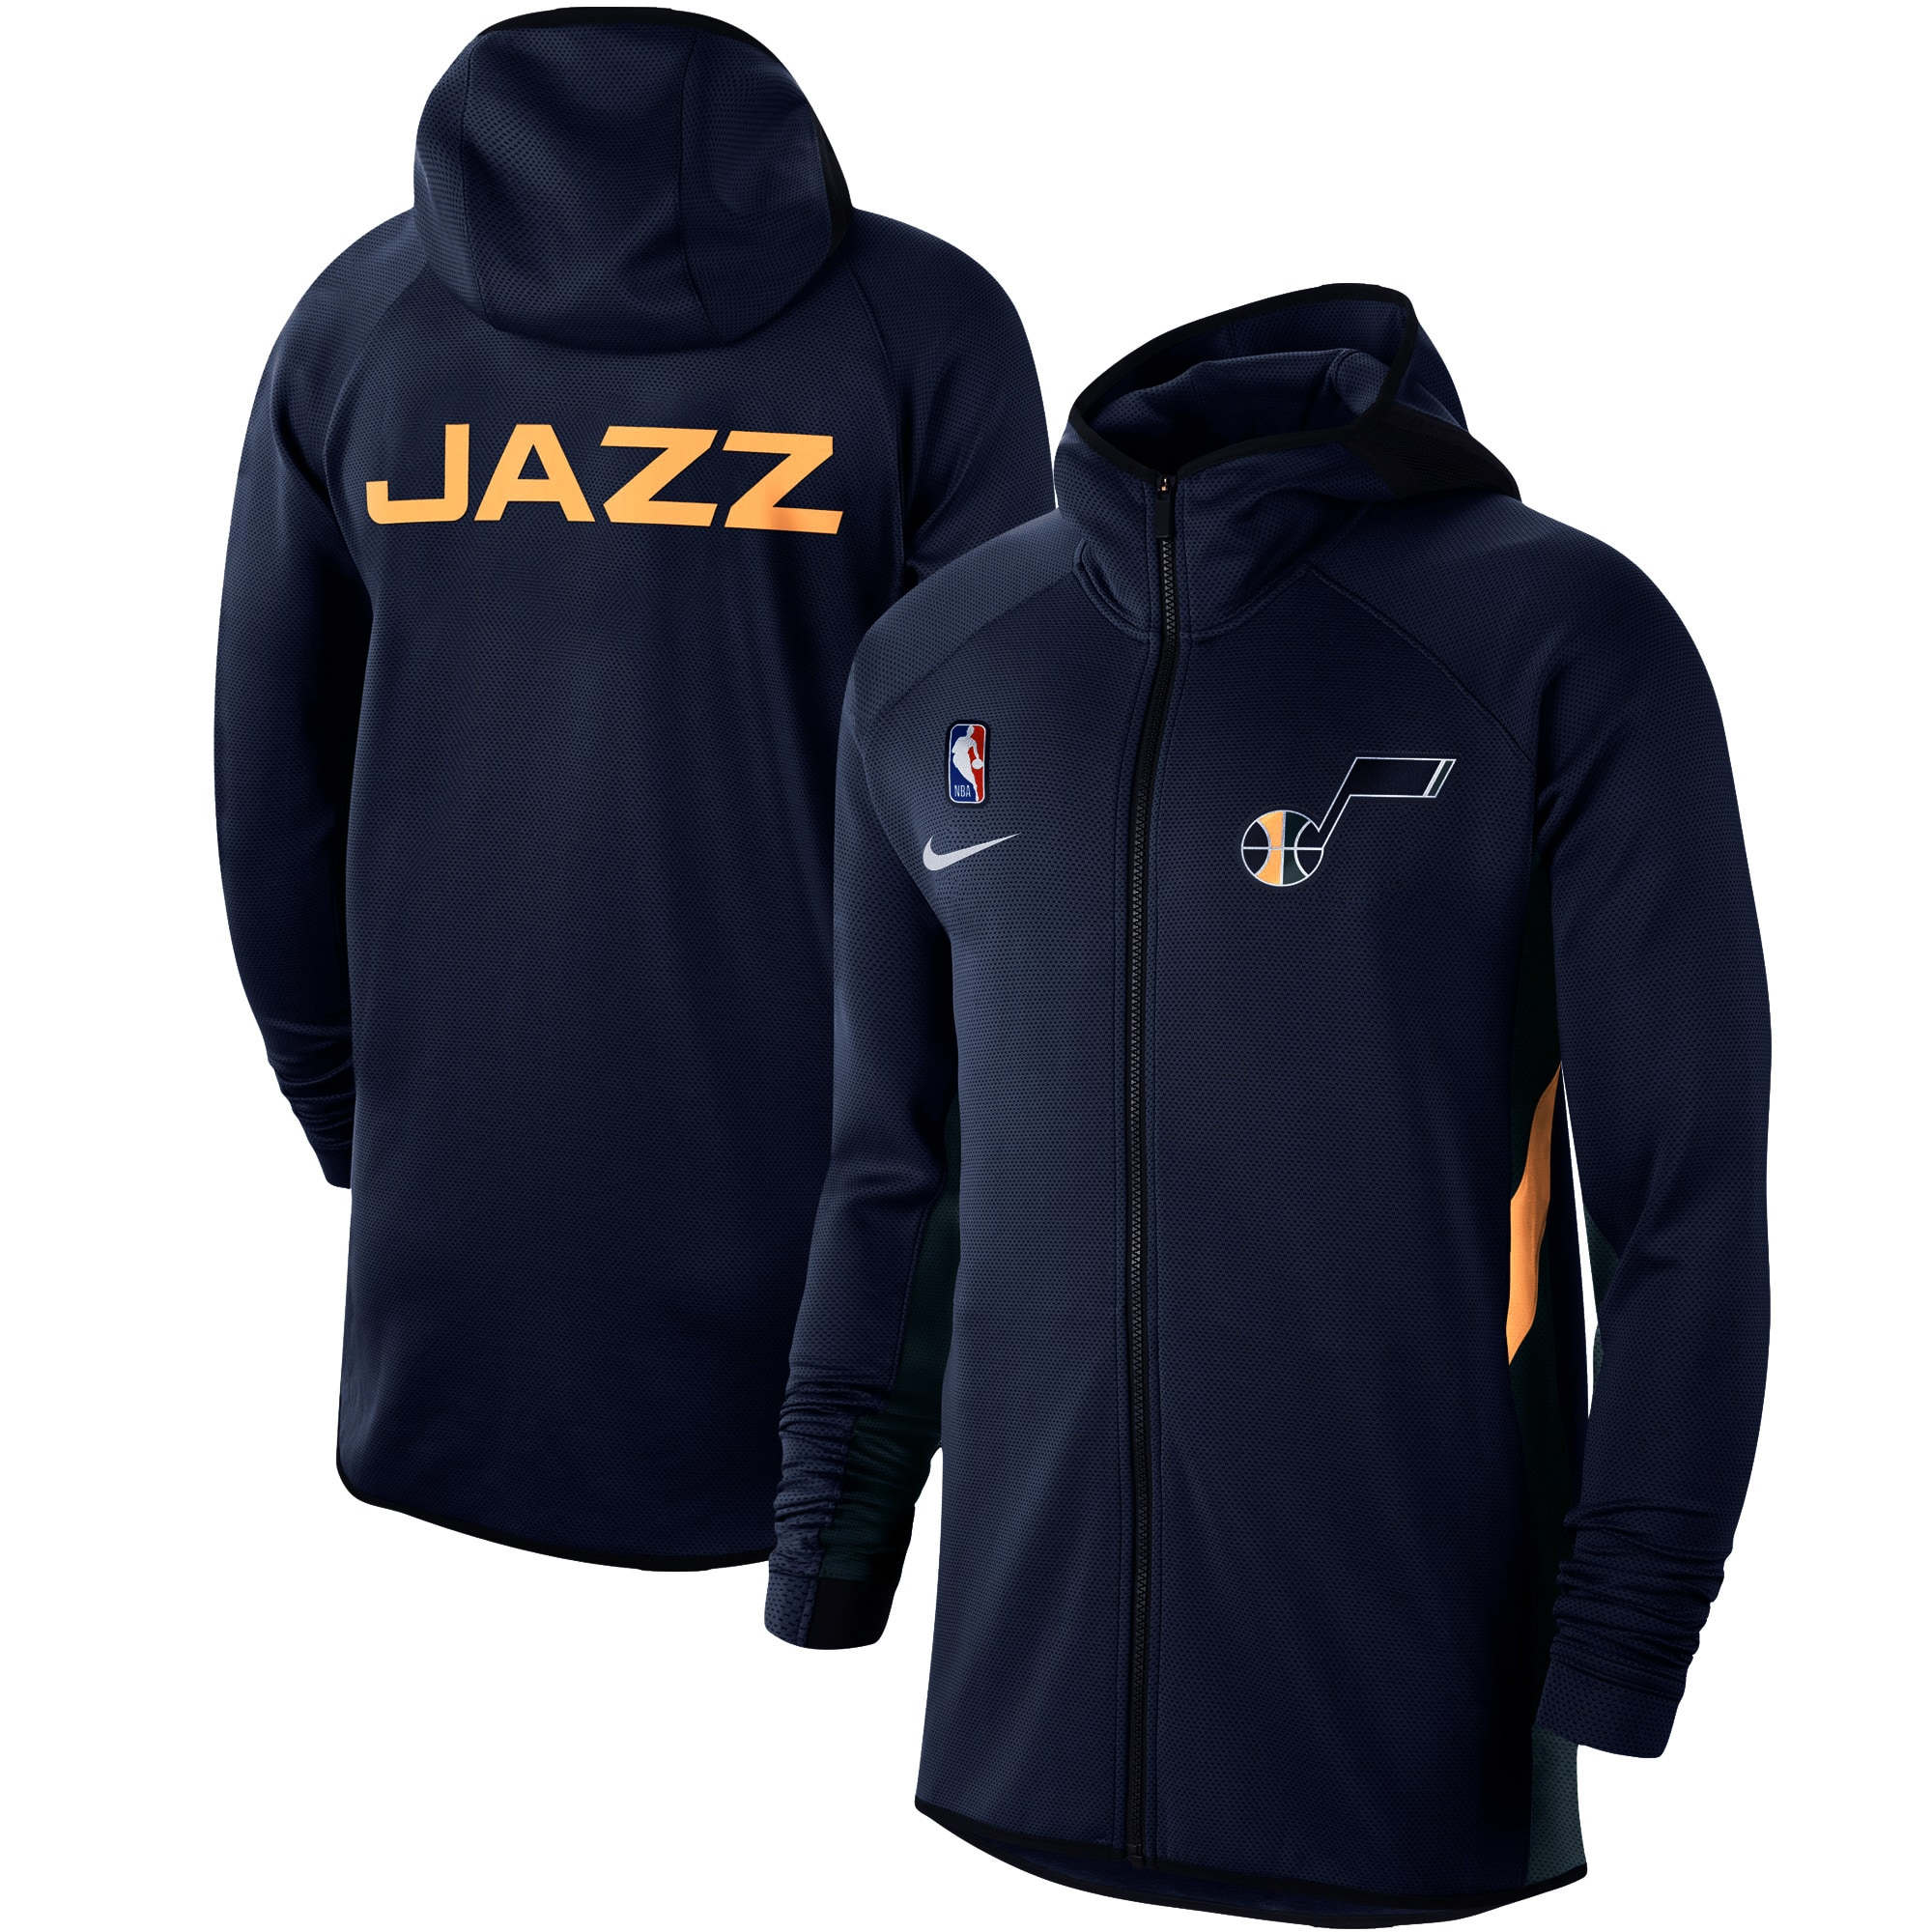 Utah Jazz Nike Authentic Showtime Therma Flex Performance Full-Zip Hoodie - Navy